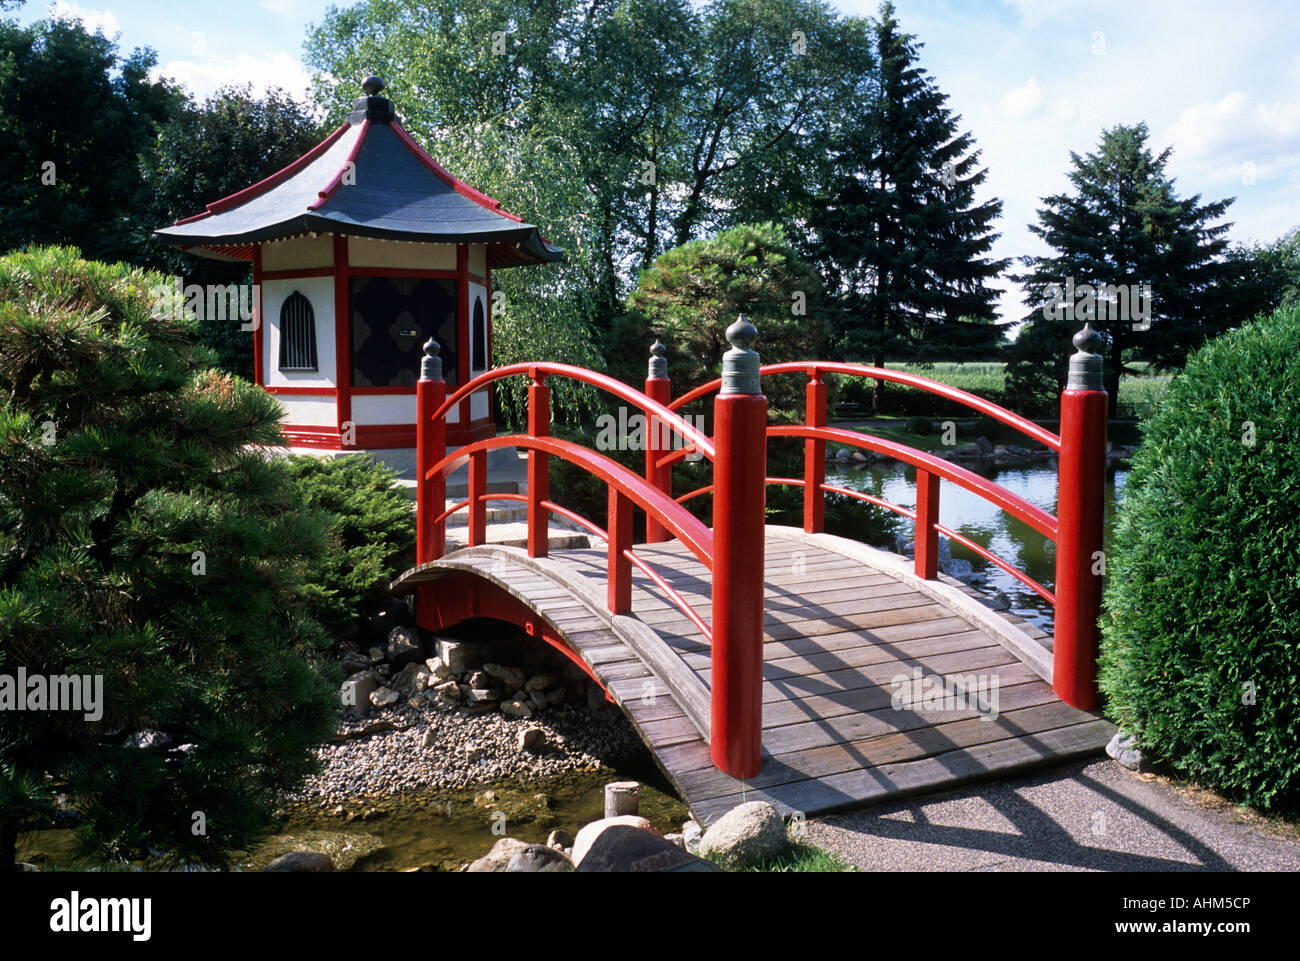 NORMANDALE JAPANESE GARDEN IN BLOOMINGTON, MINNESOTA. DESIGNED BY TAKAO WATANABE. MID-SUMMER.